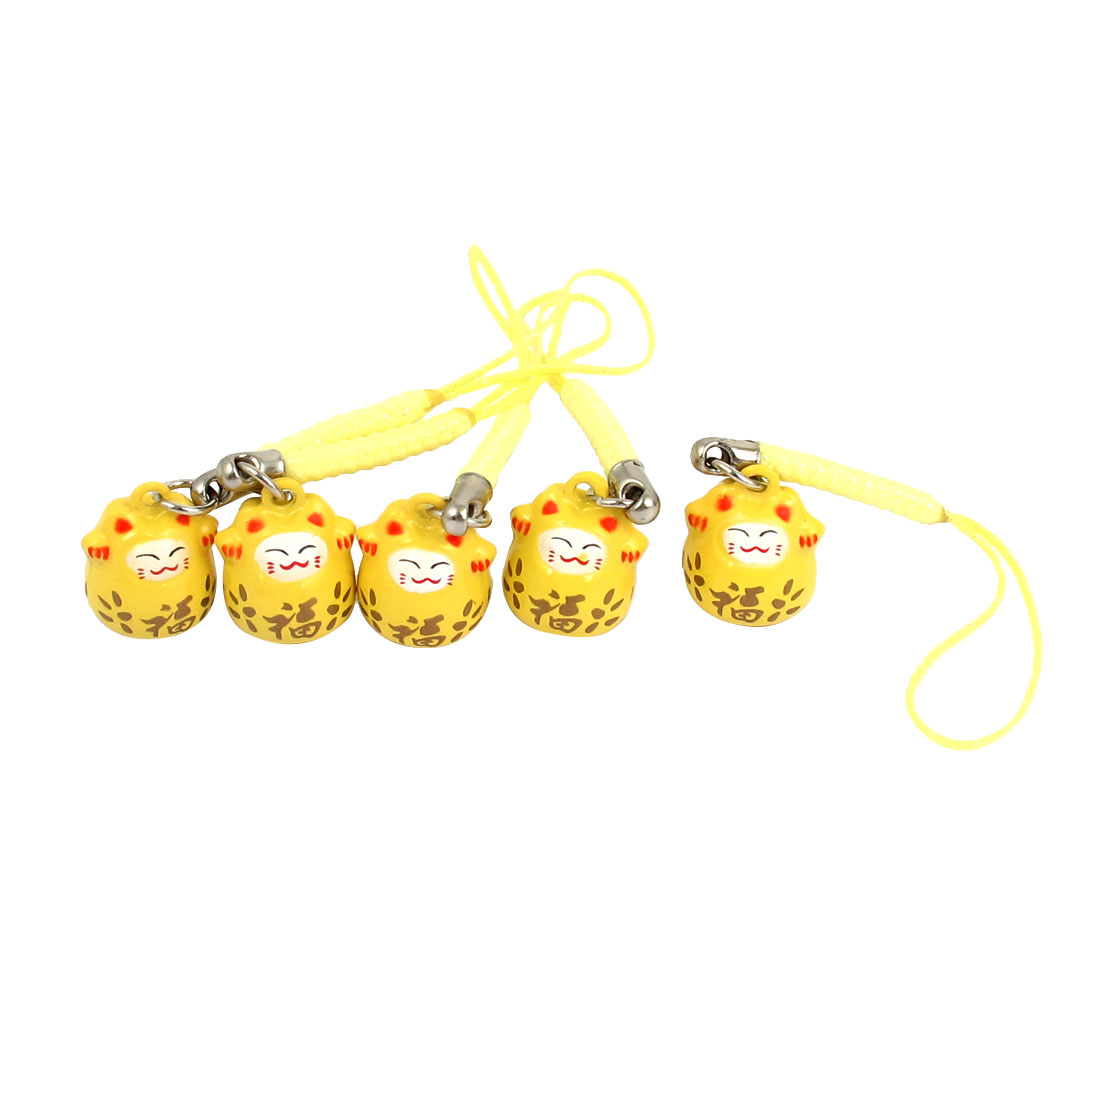 Maneki Neko Cat Japanese Lucky Charm Ring Bell Hanging Strap Yellow 18mm Dimenter 5 Pcs